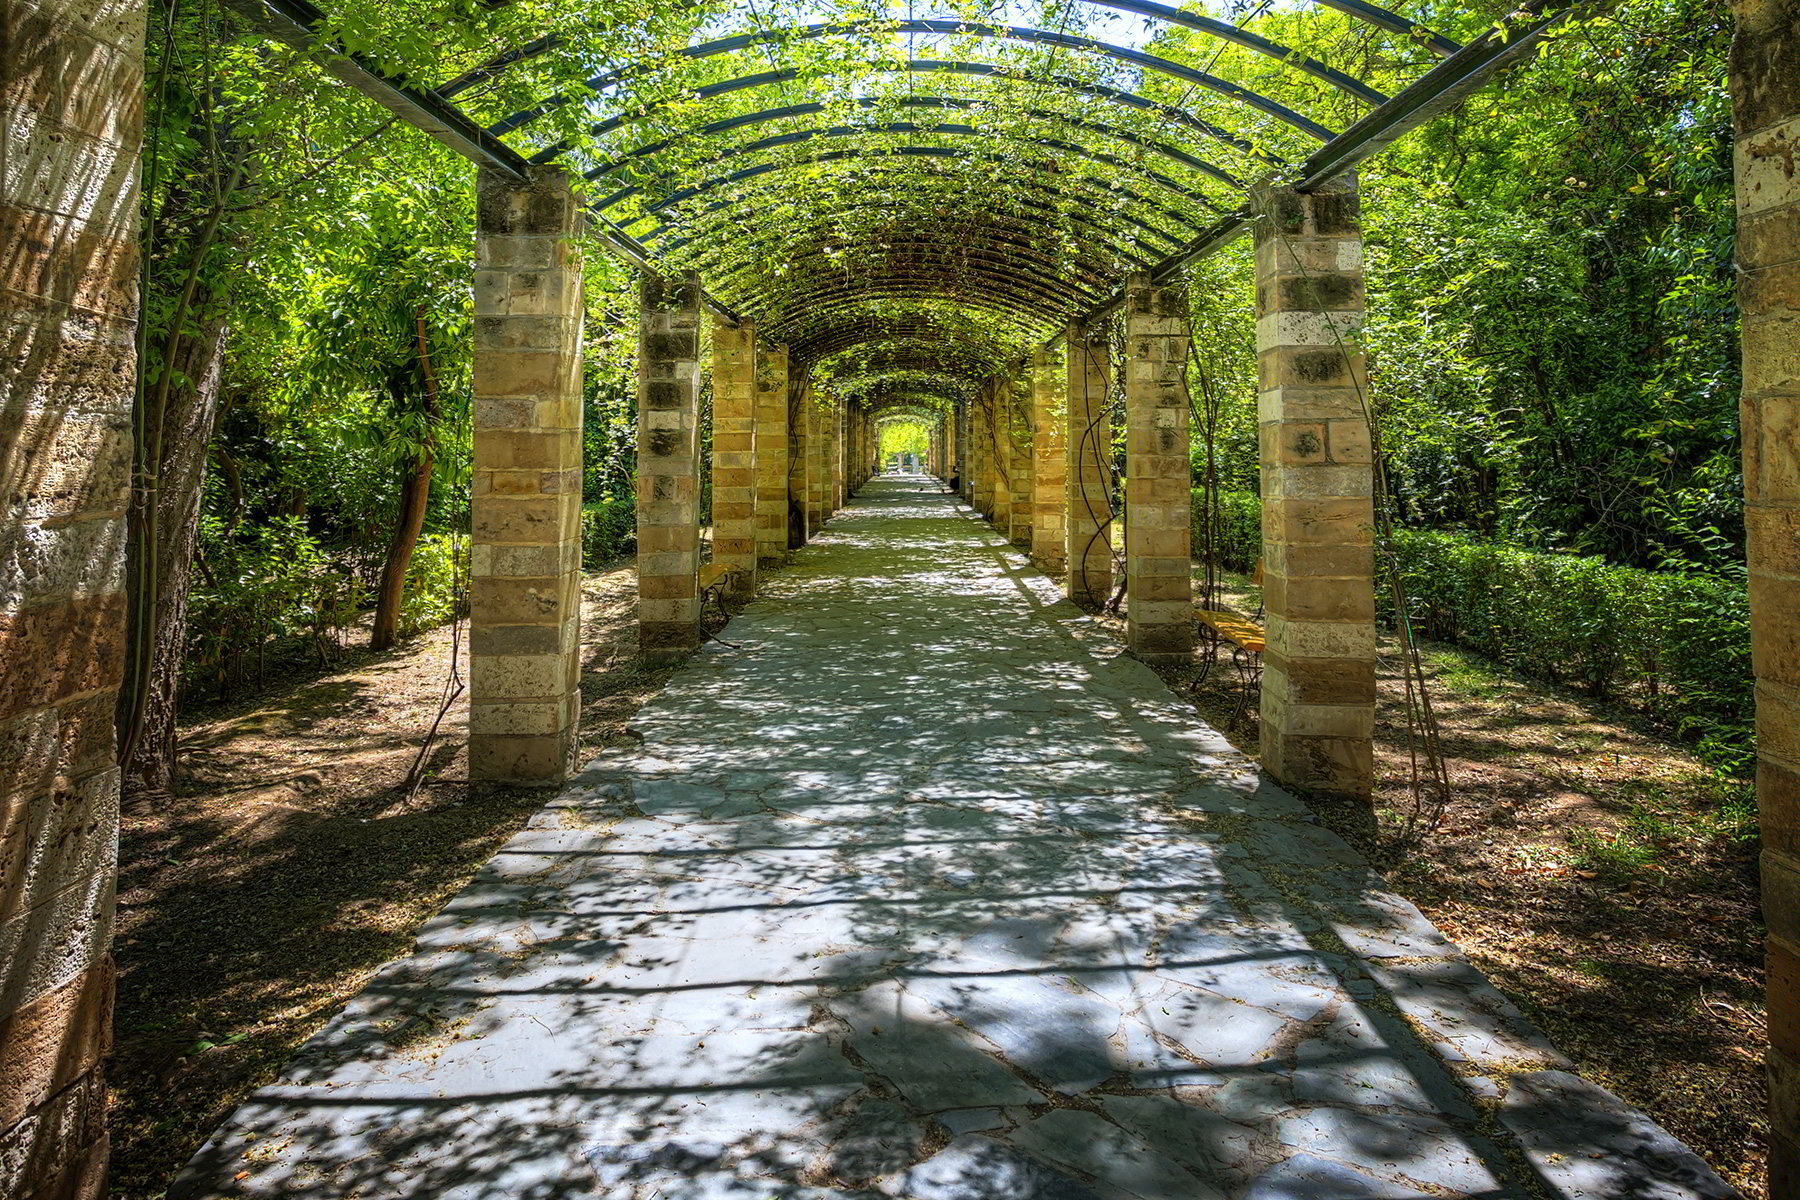 The National Garden of Athens in Greece